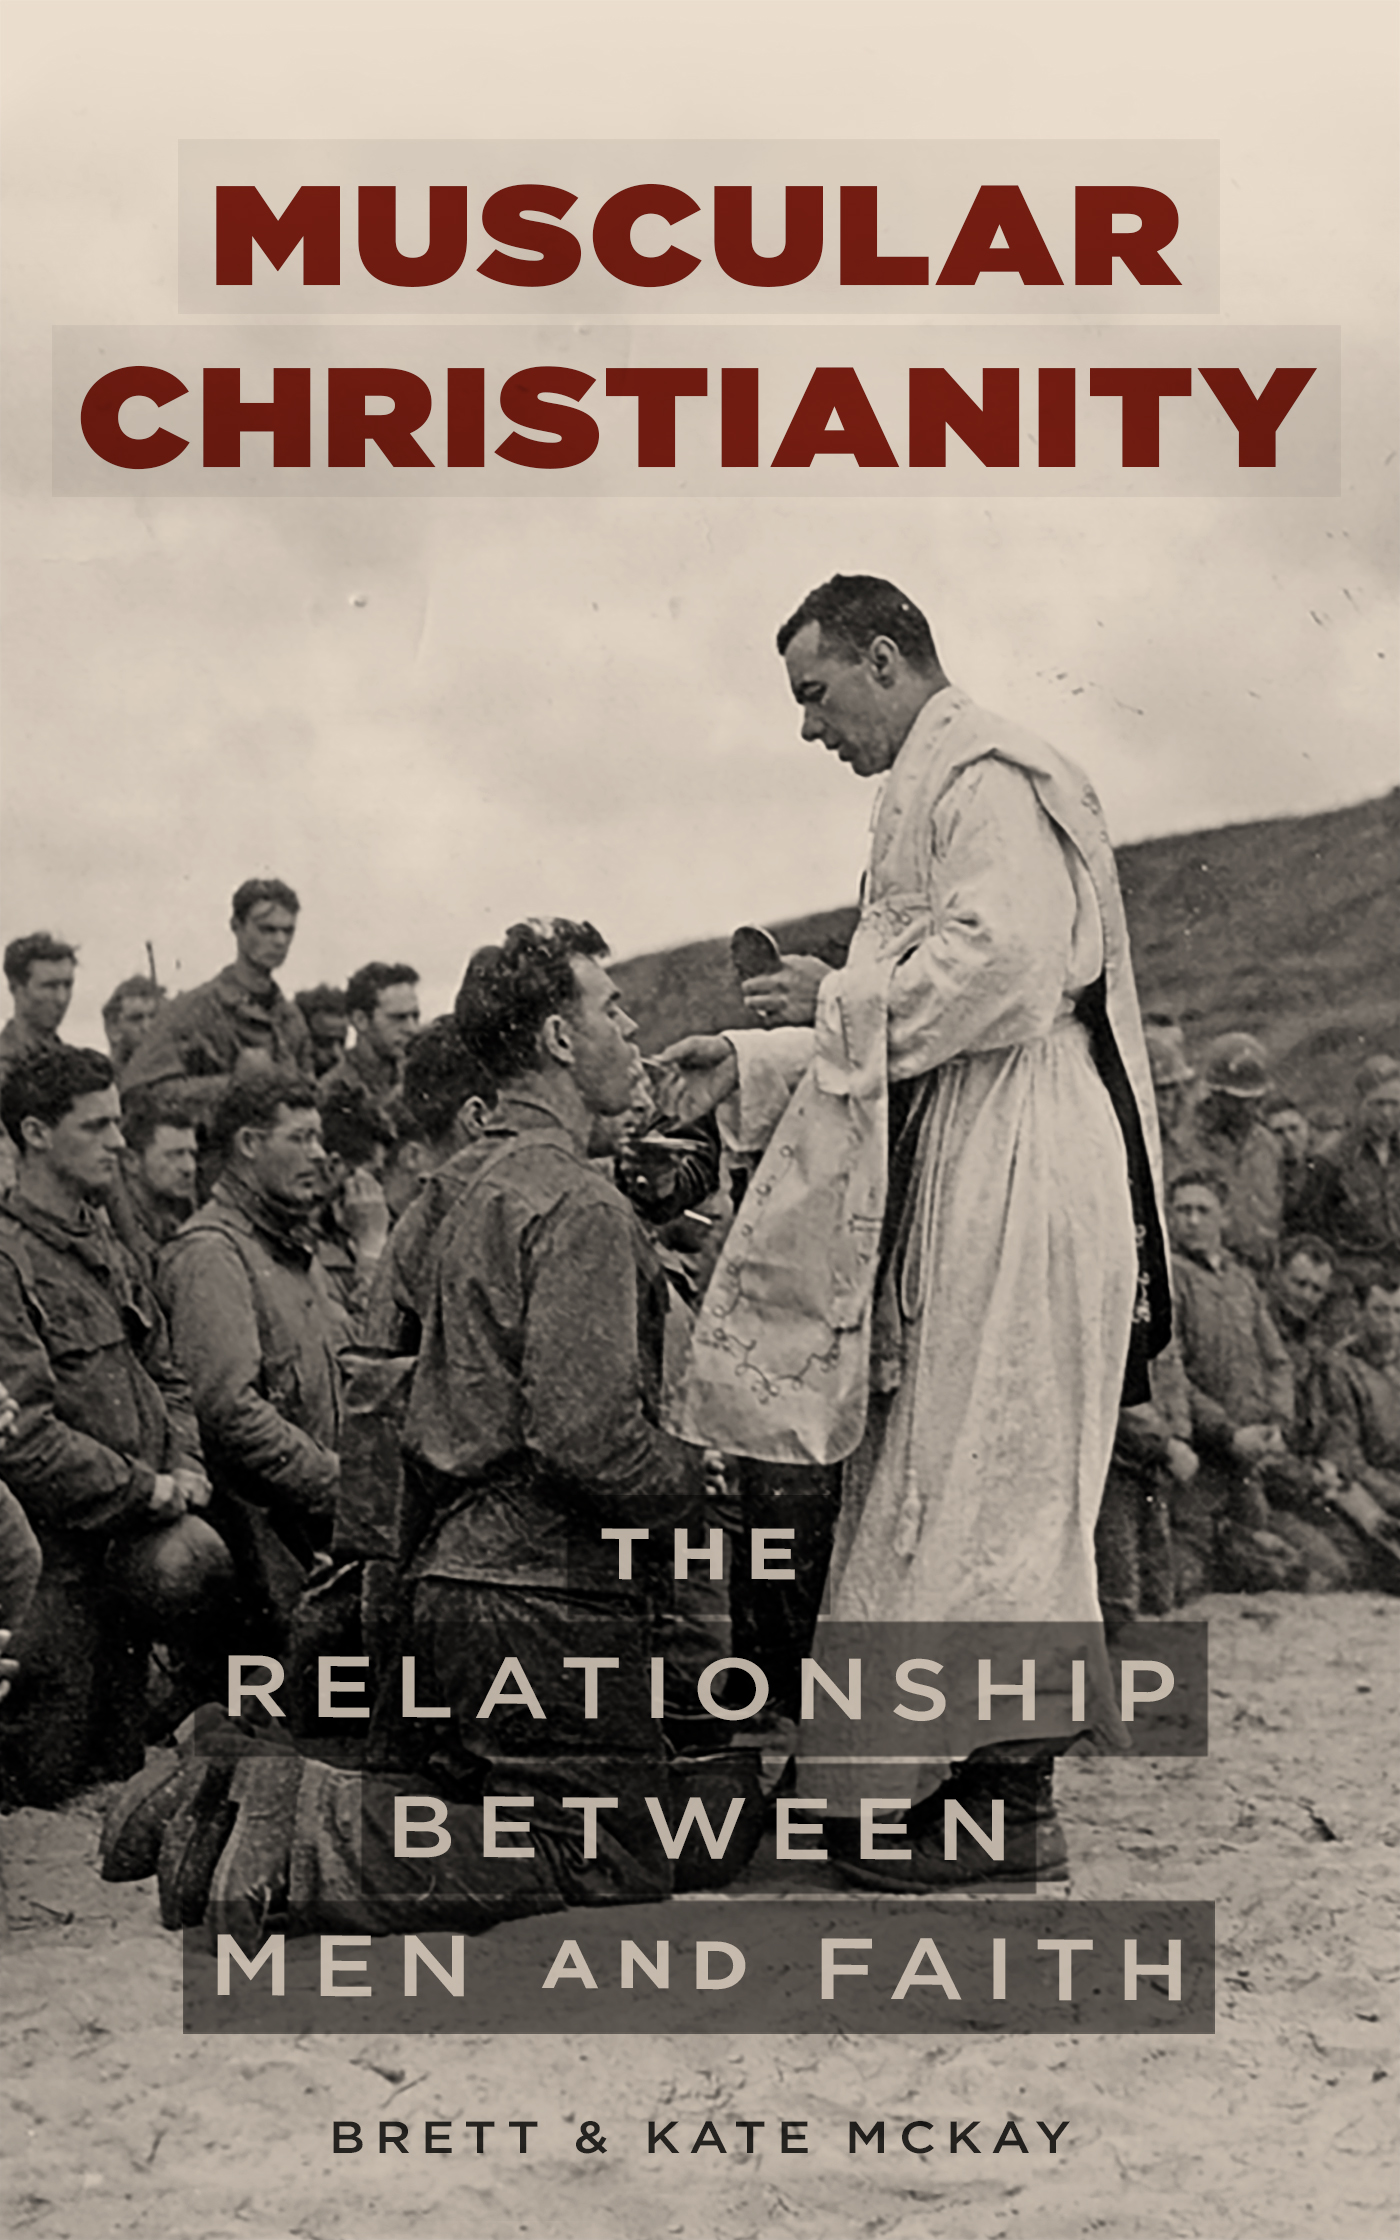 Book cover of Muscular Christianity by Brett & Kate Mckay.